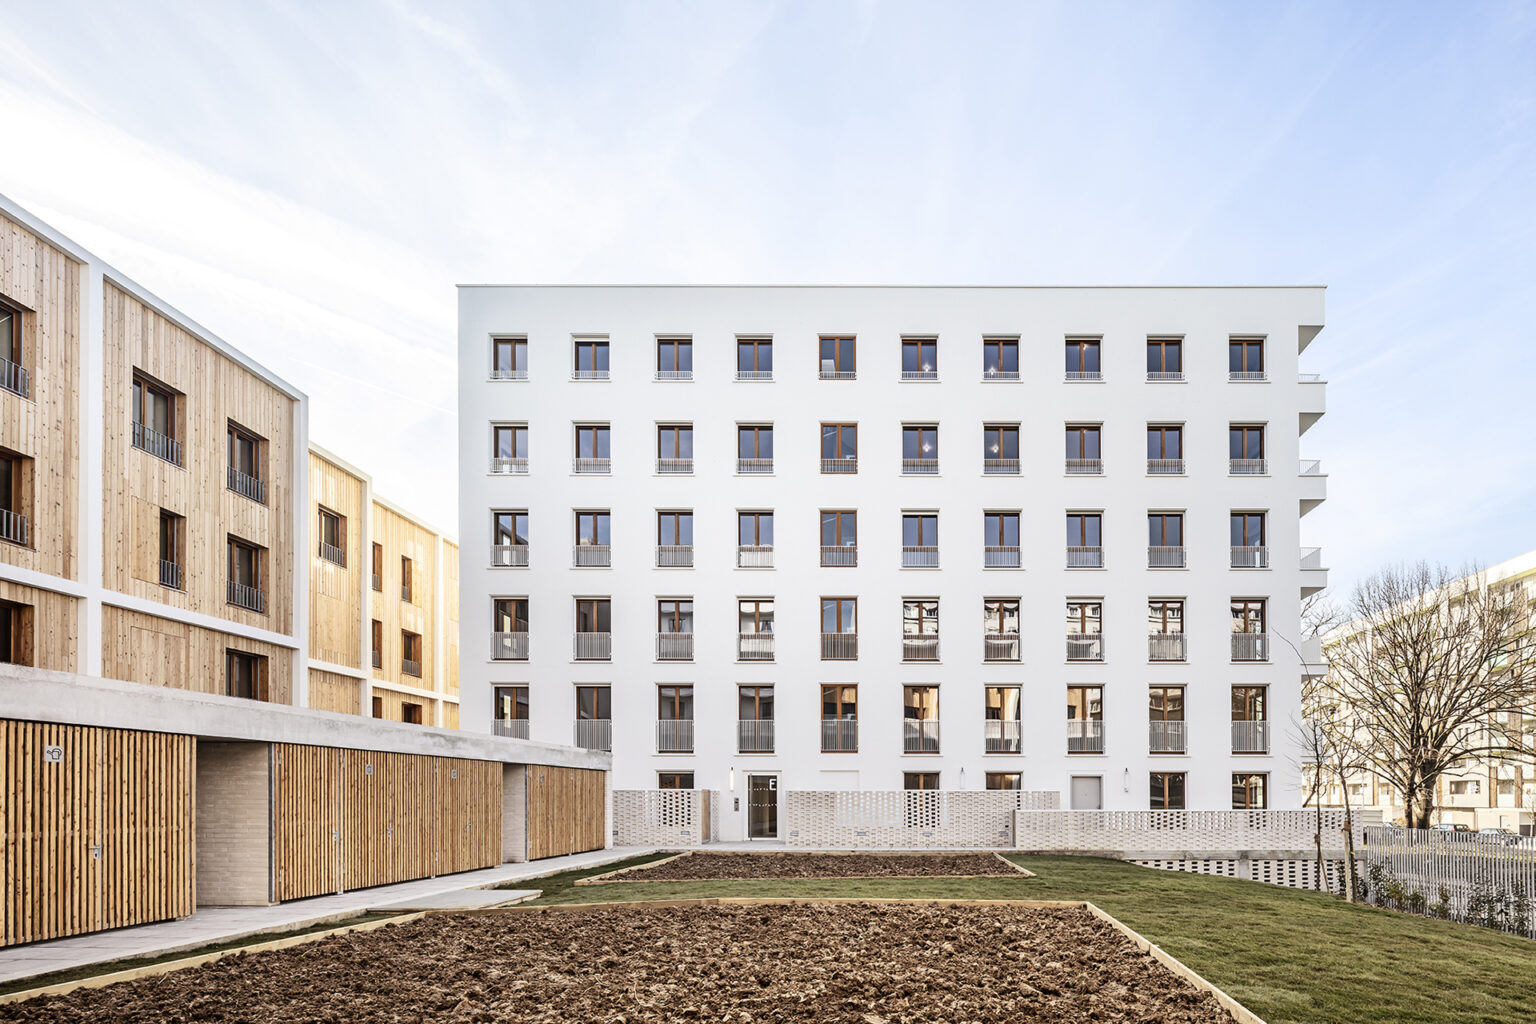 mao + JTB.architecture - Logements à La Courneuve, 2018, Architecte MAO